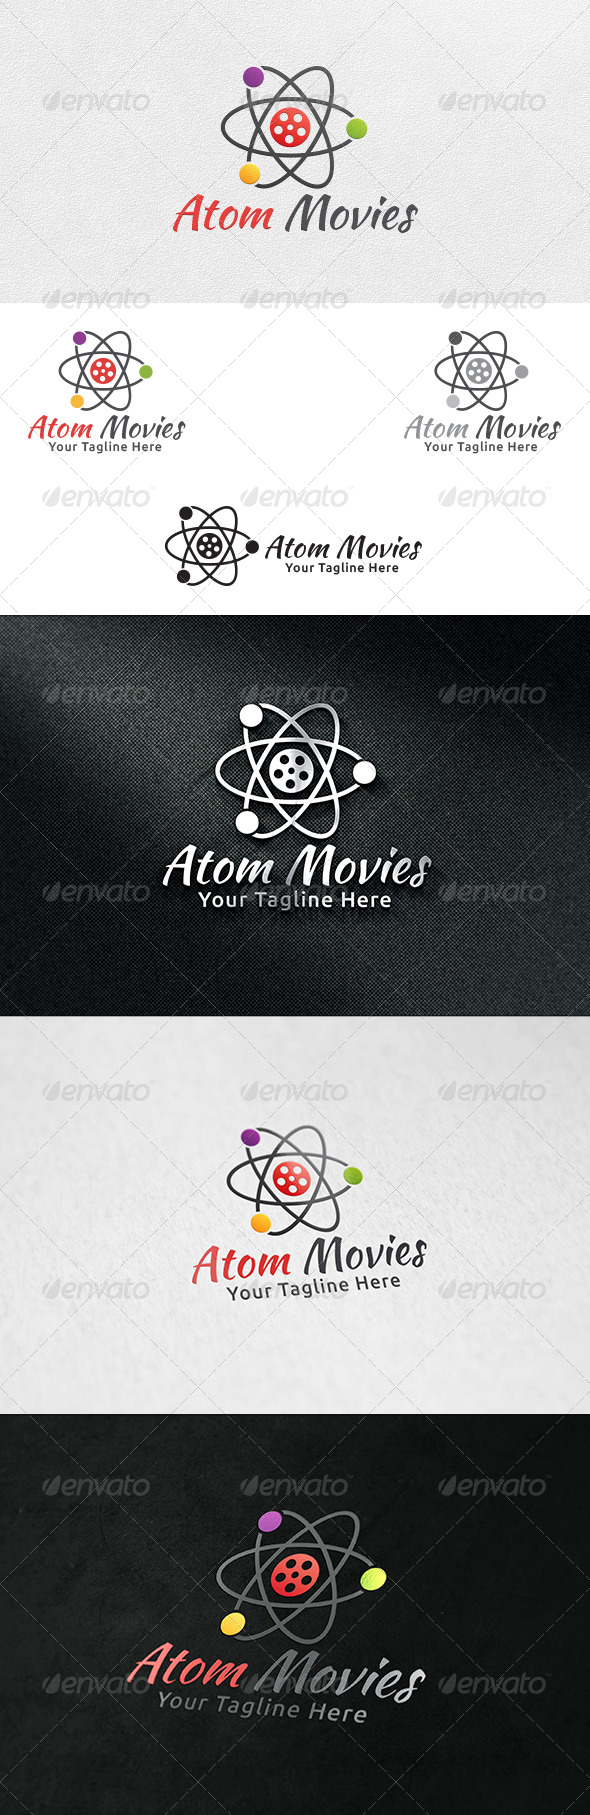 Atom Movies - Logo Template - Symbols Logo Templates